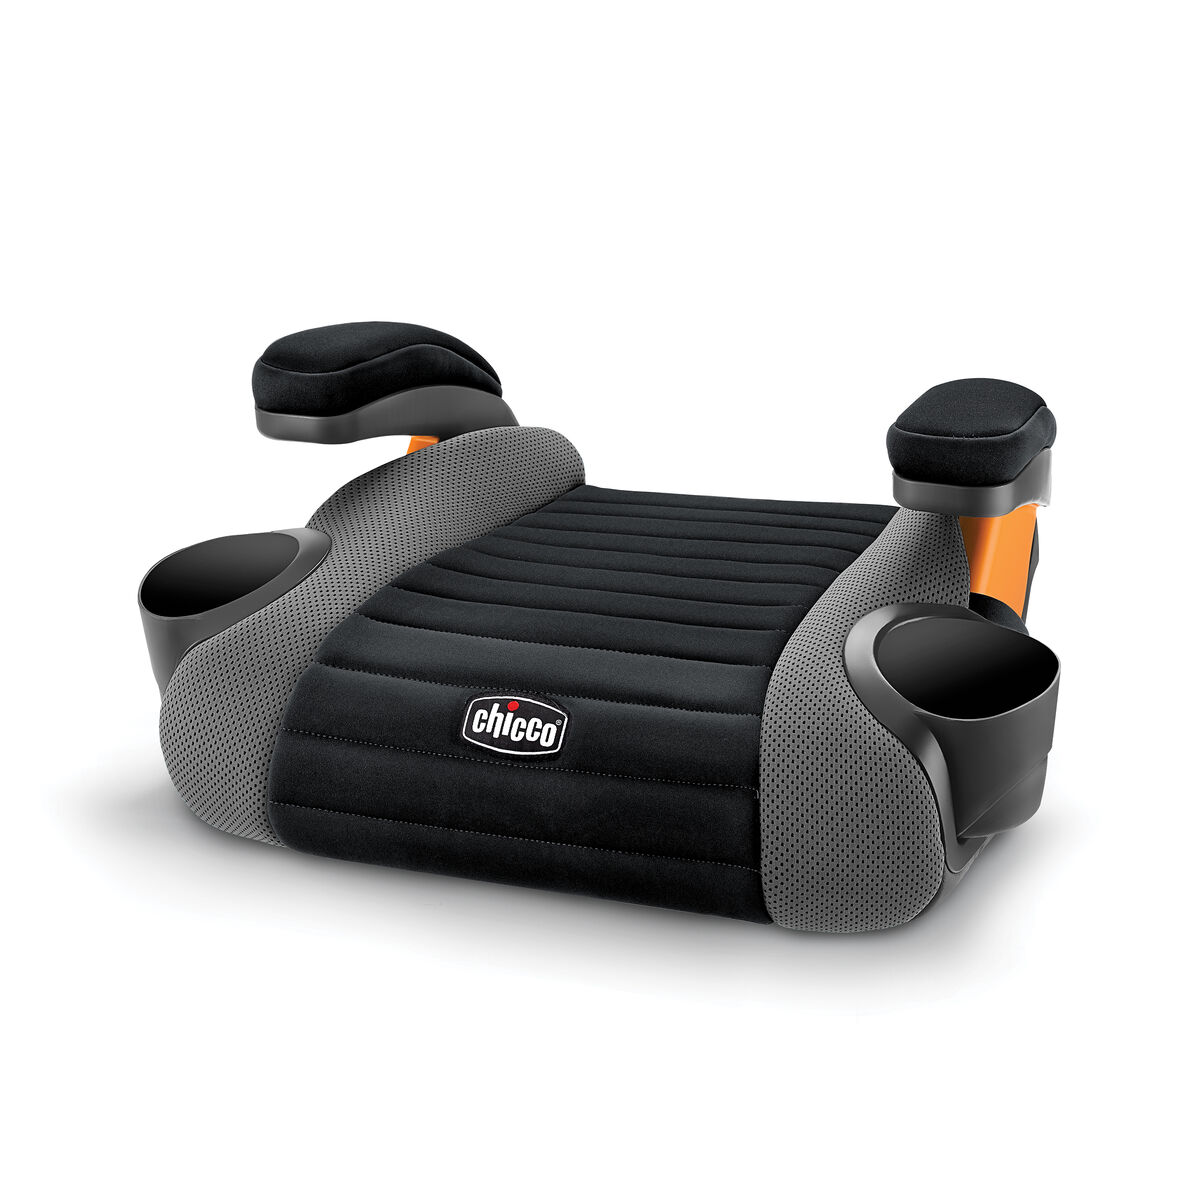 Chicco Chicco Gofit Backless Booster Car Seat Shark